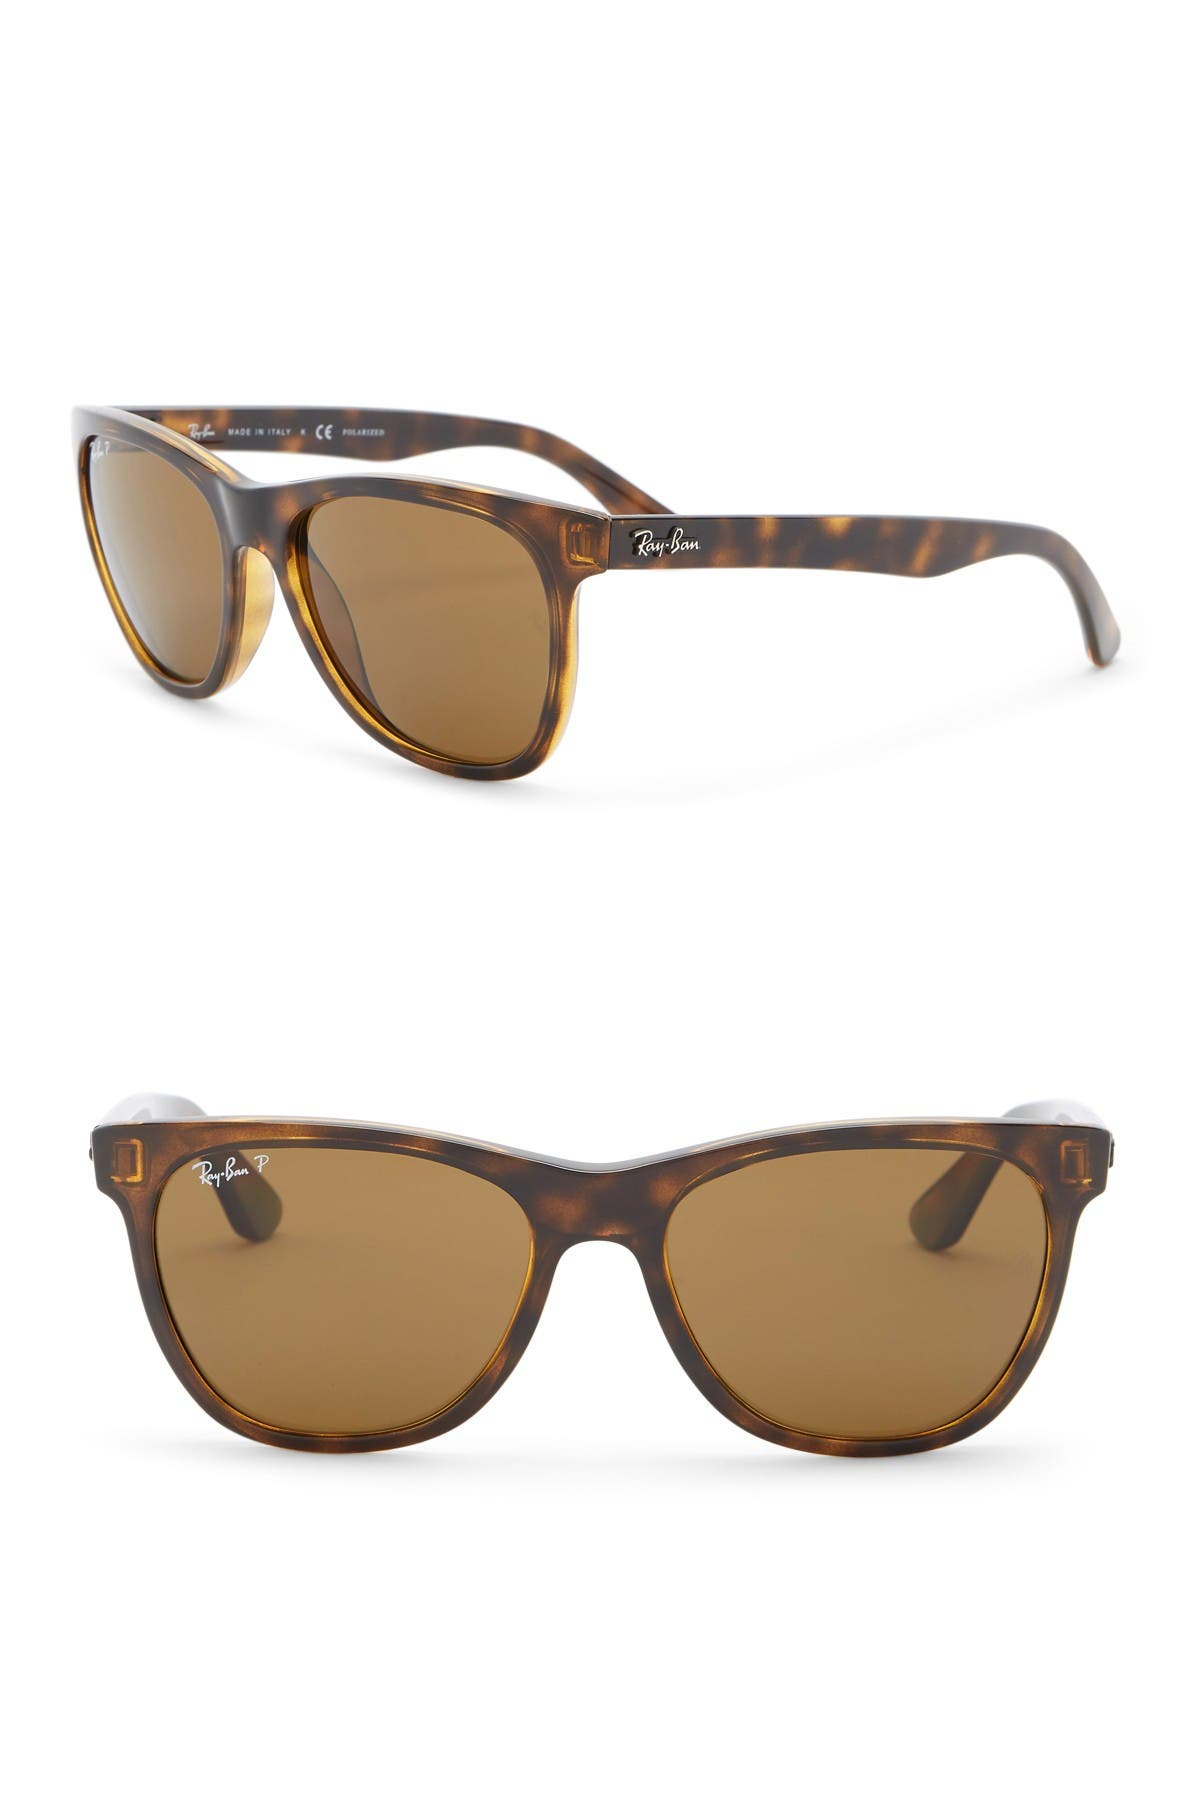 Image of Ray-Ban 54mm Polarized Wayfarer Sunglasses